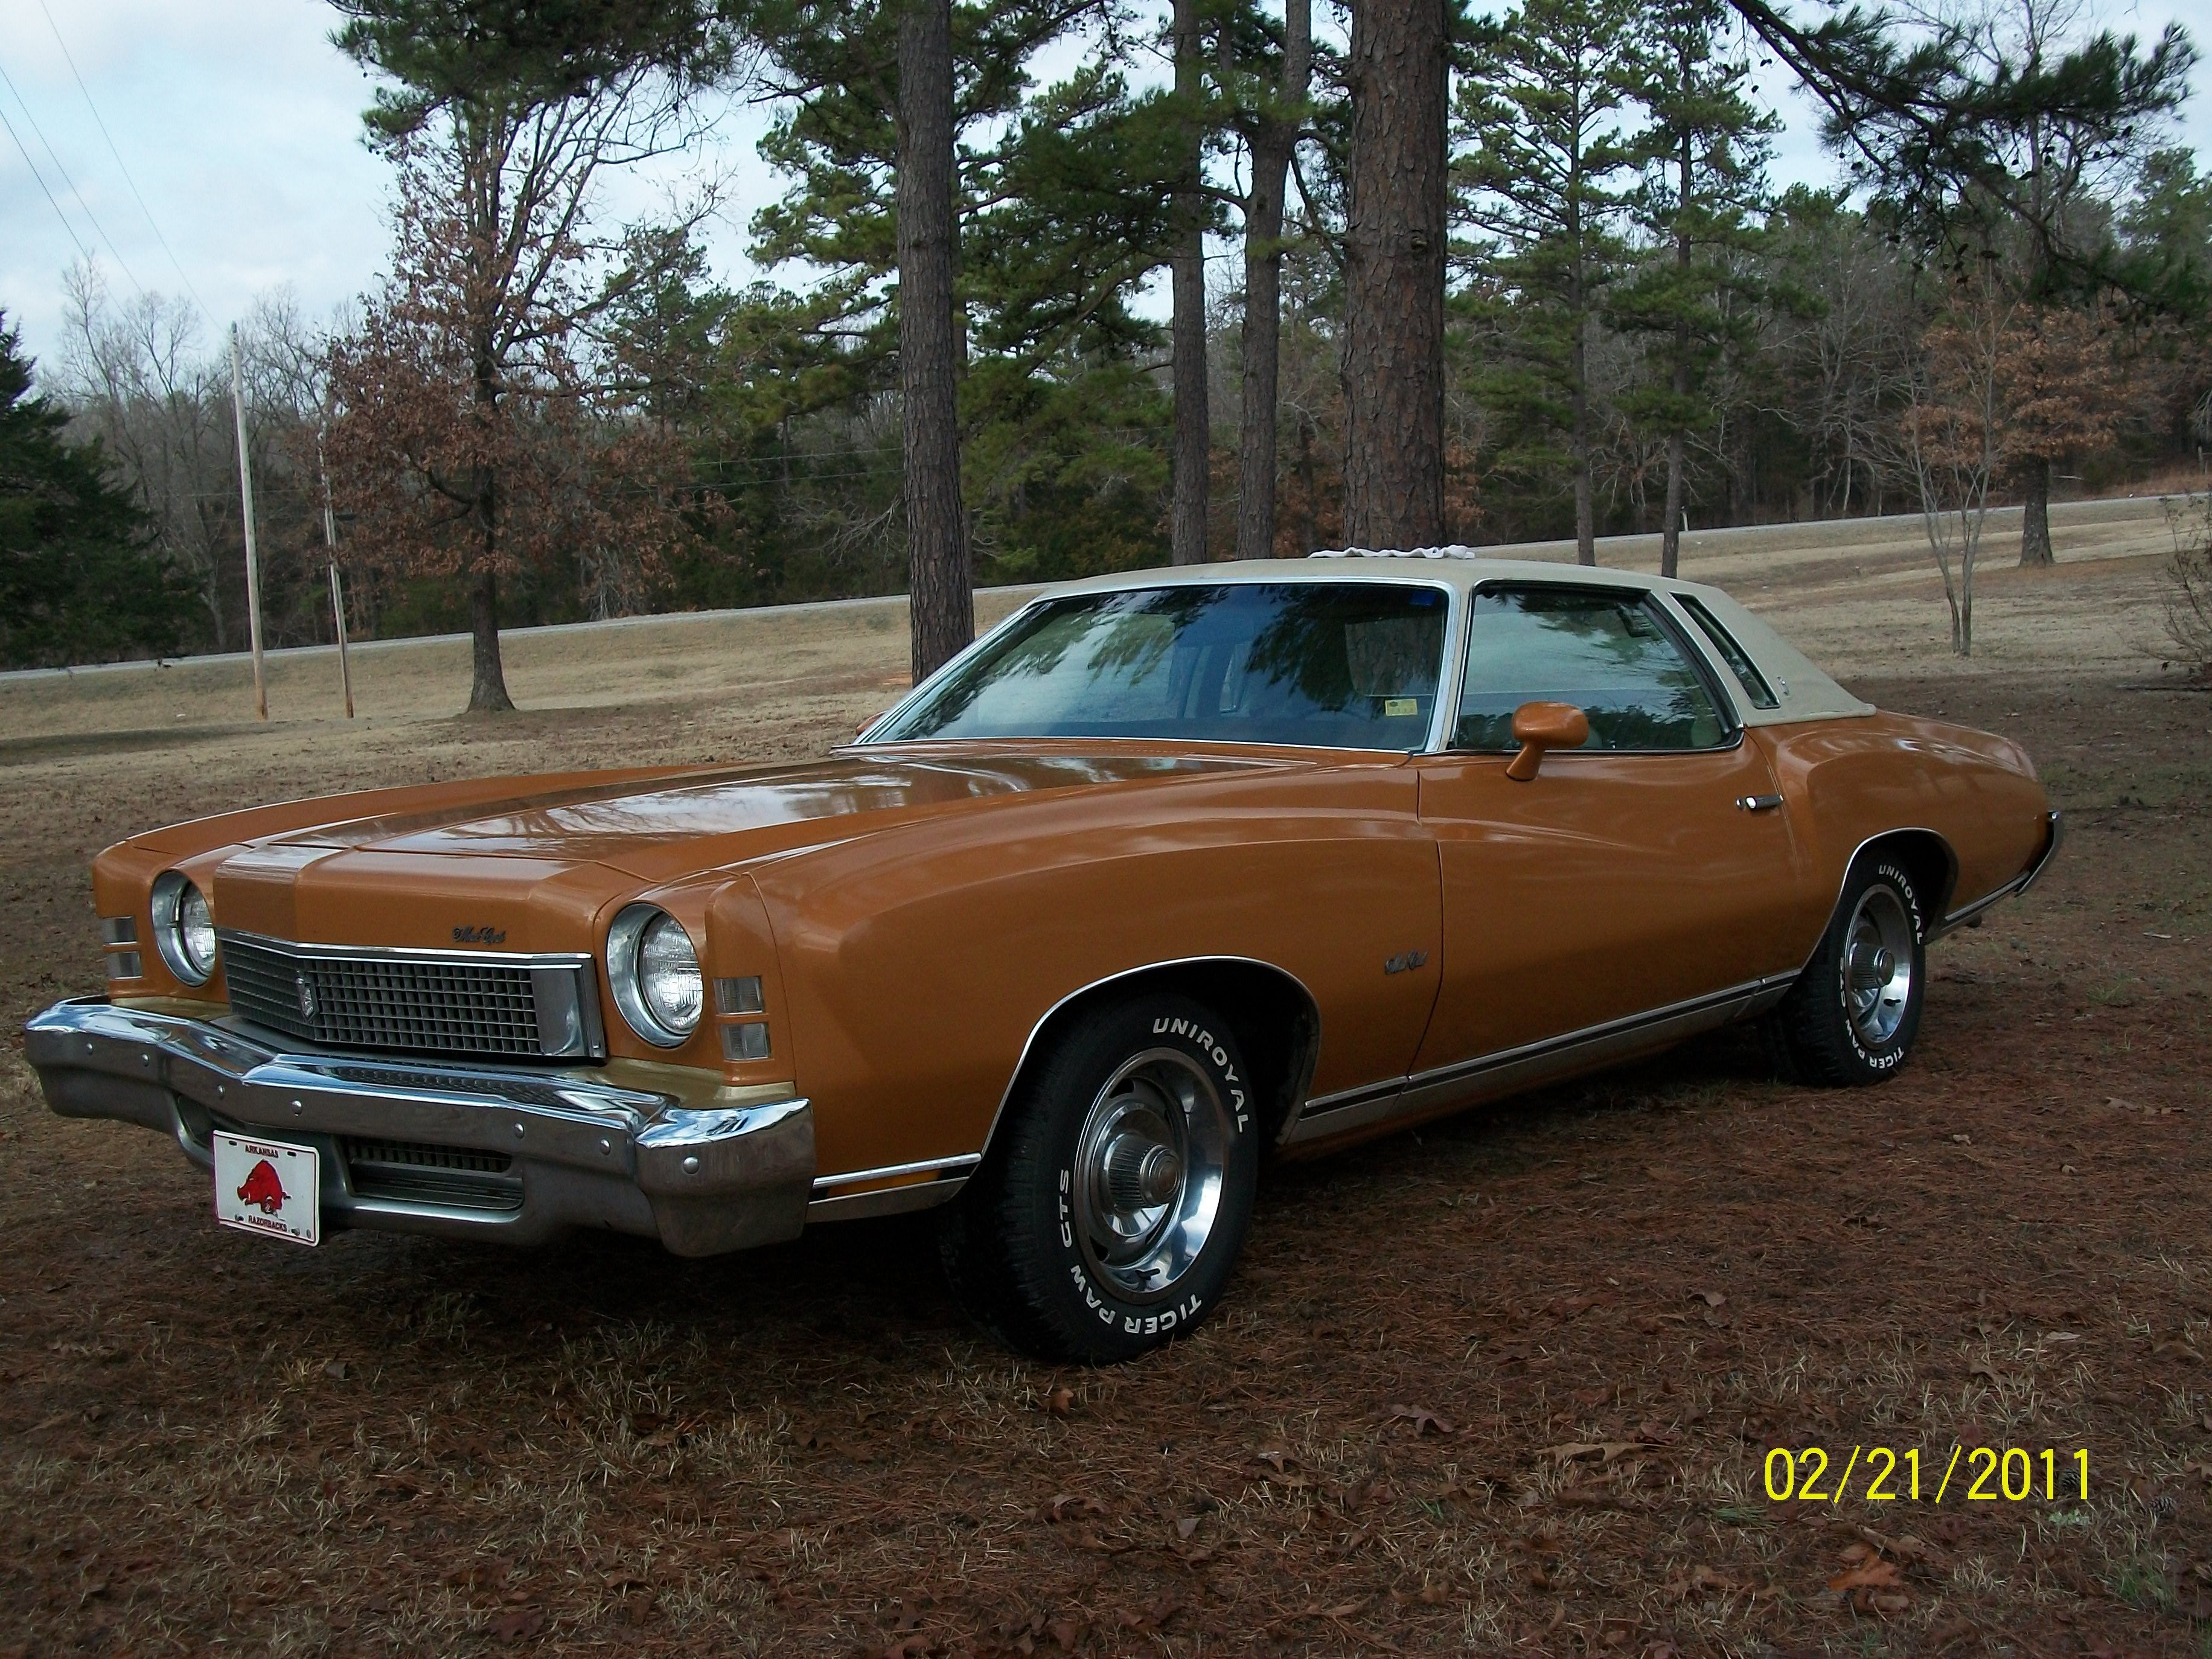 1973 monte carlo ss 454 pictures to pin on pinterest. Black Bedroom Furniture Sets. Home Design Ideas